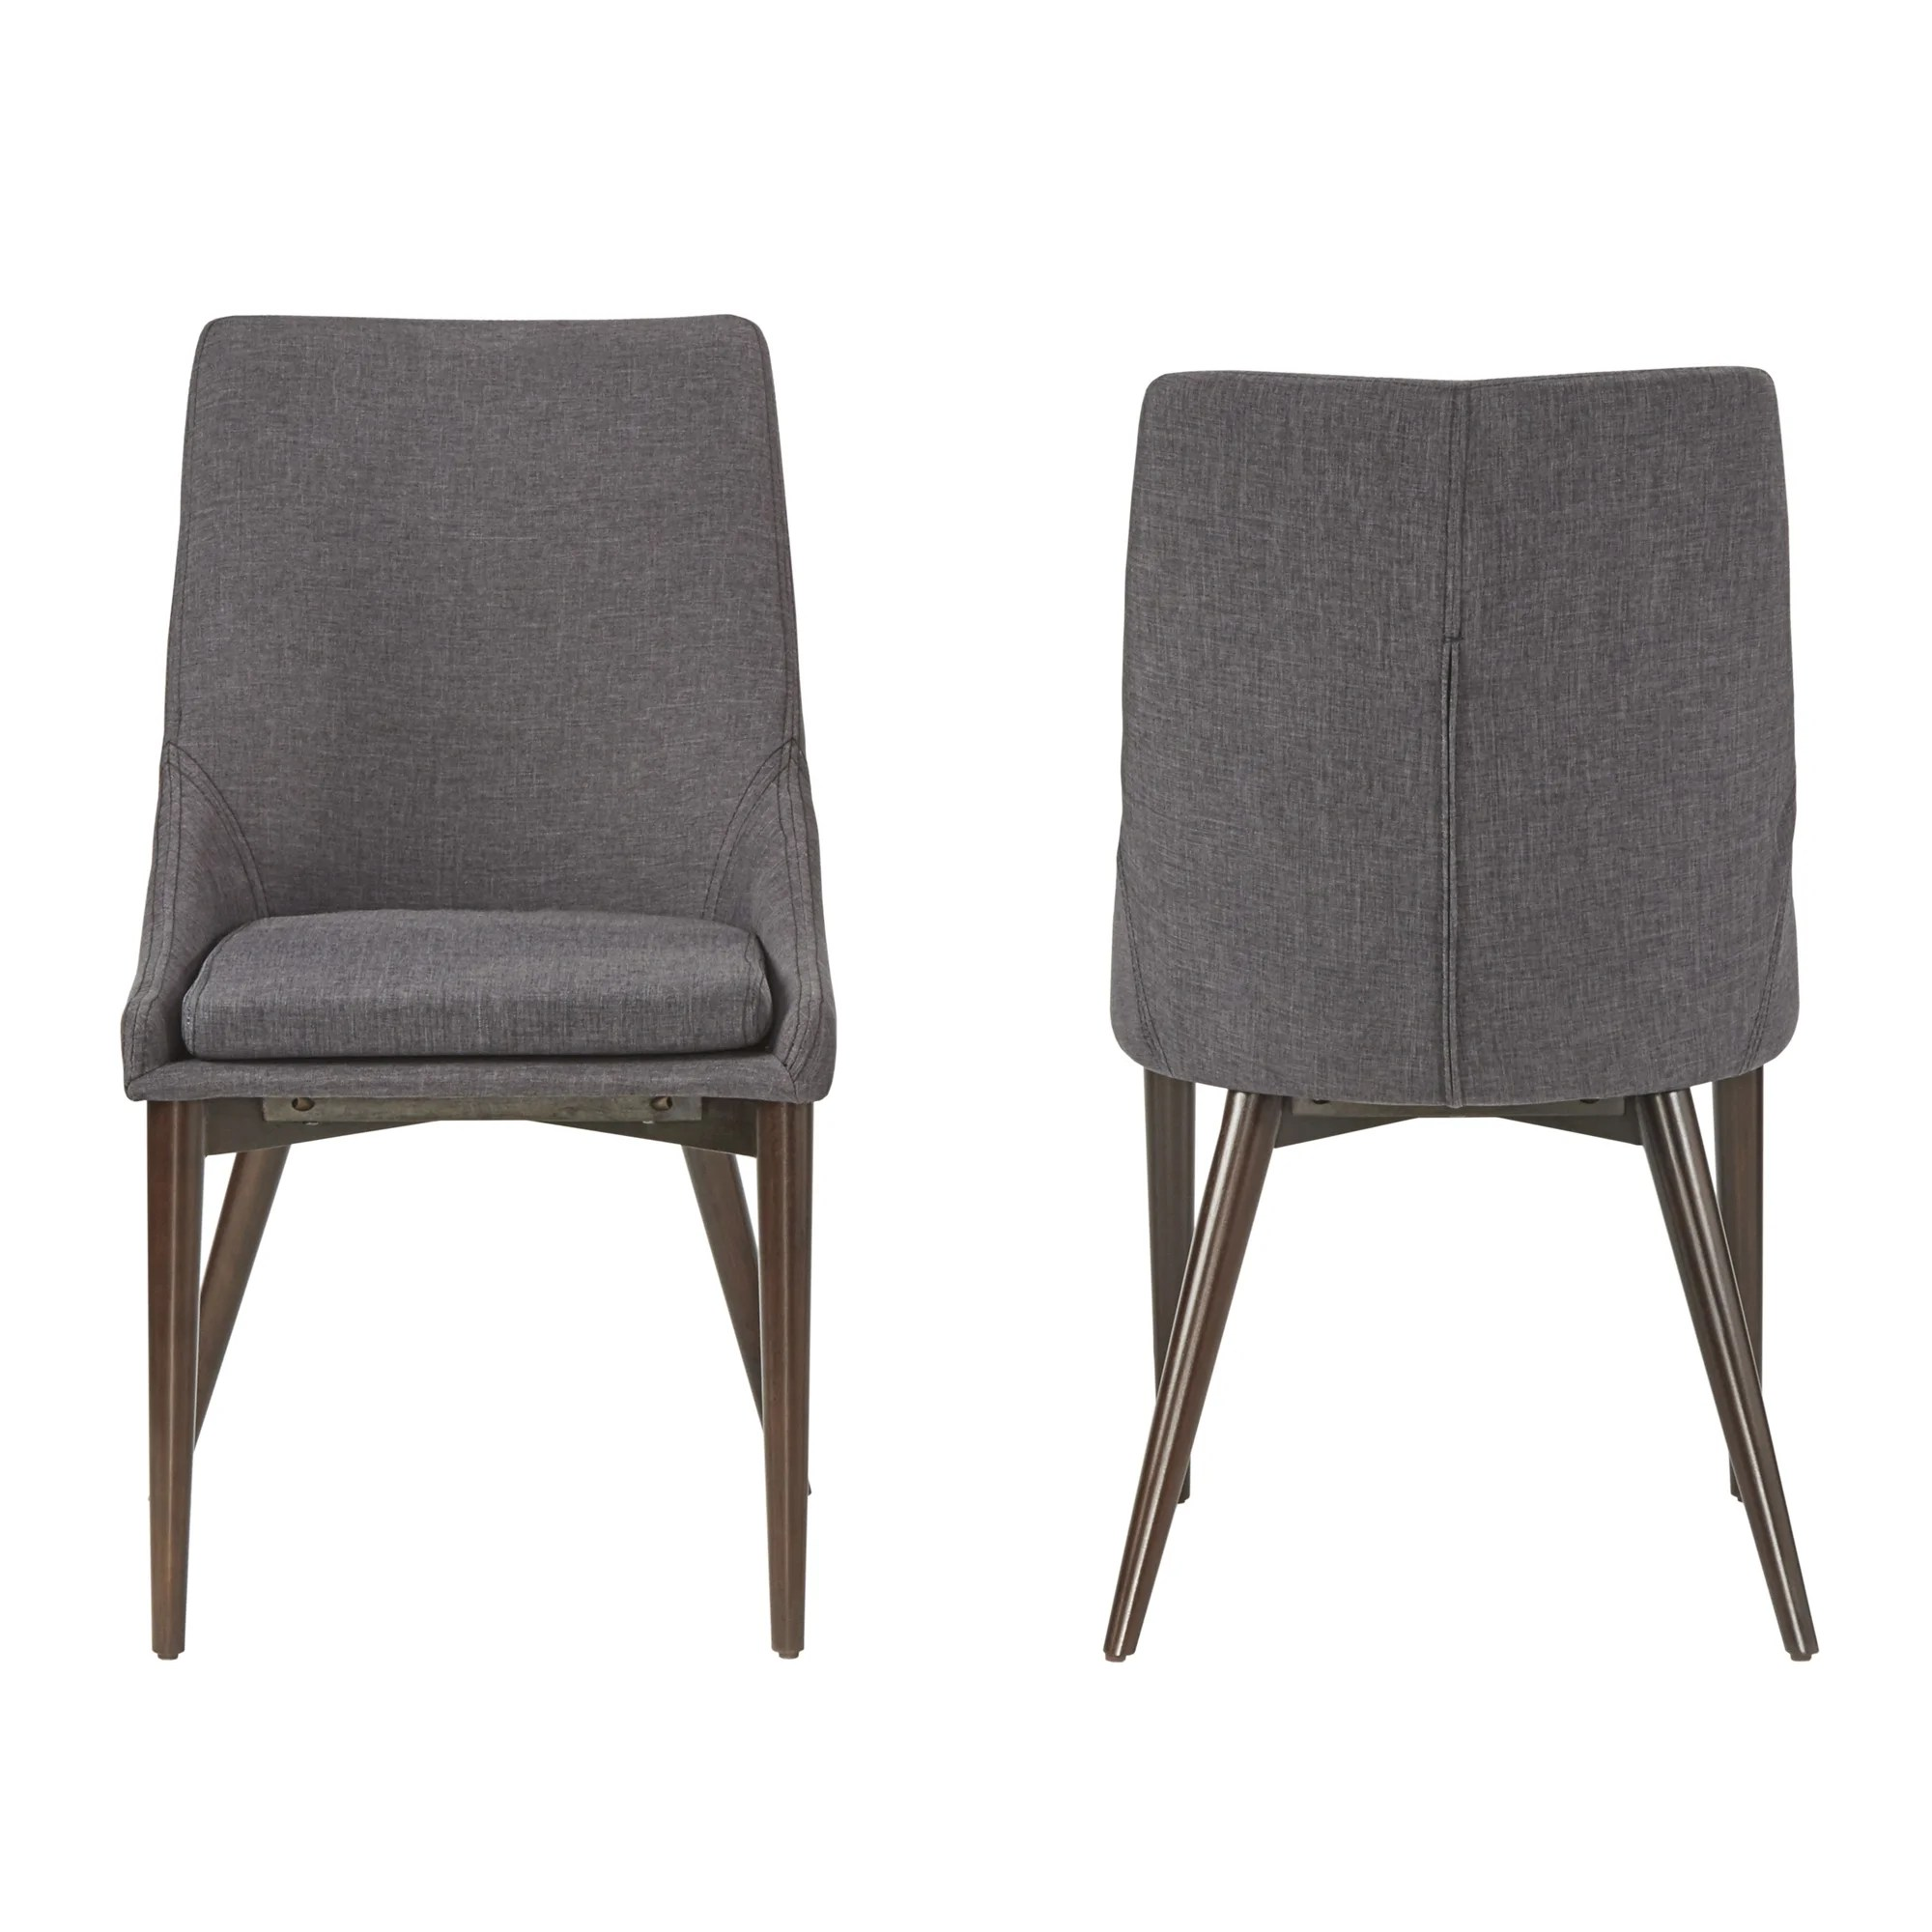 modern gray dining chairs webbing for lawn shop sasha mid century barrel back set of 2 by inspire q on sale free shipping today overstock com 10390630